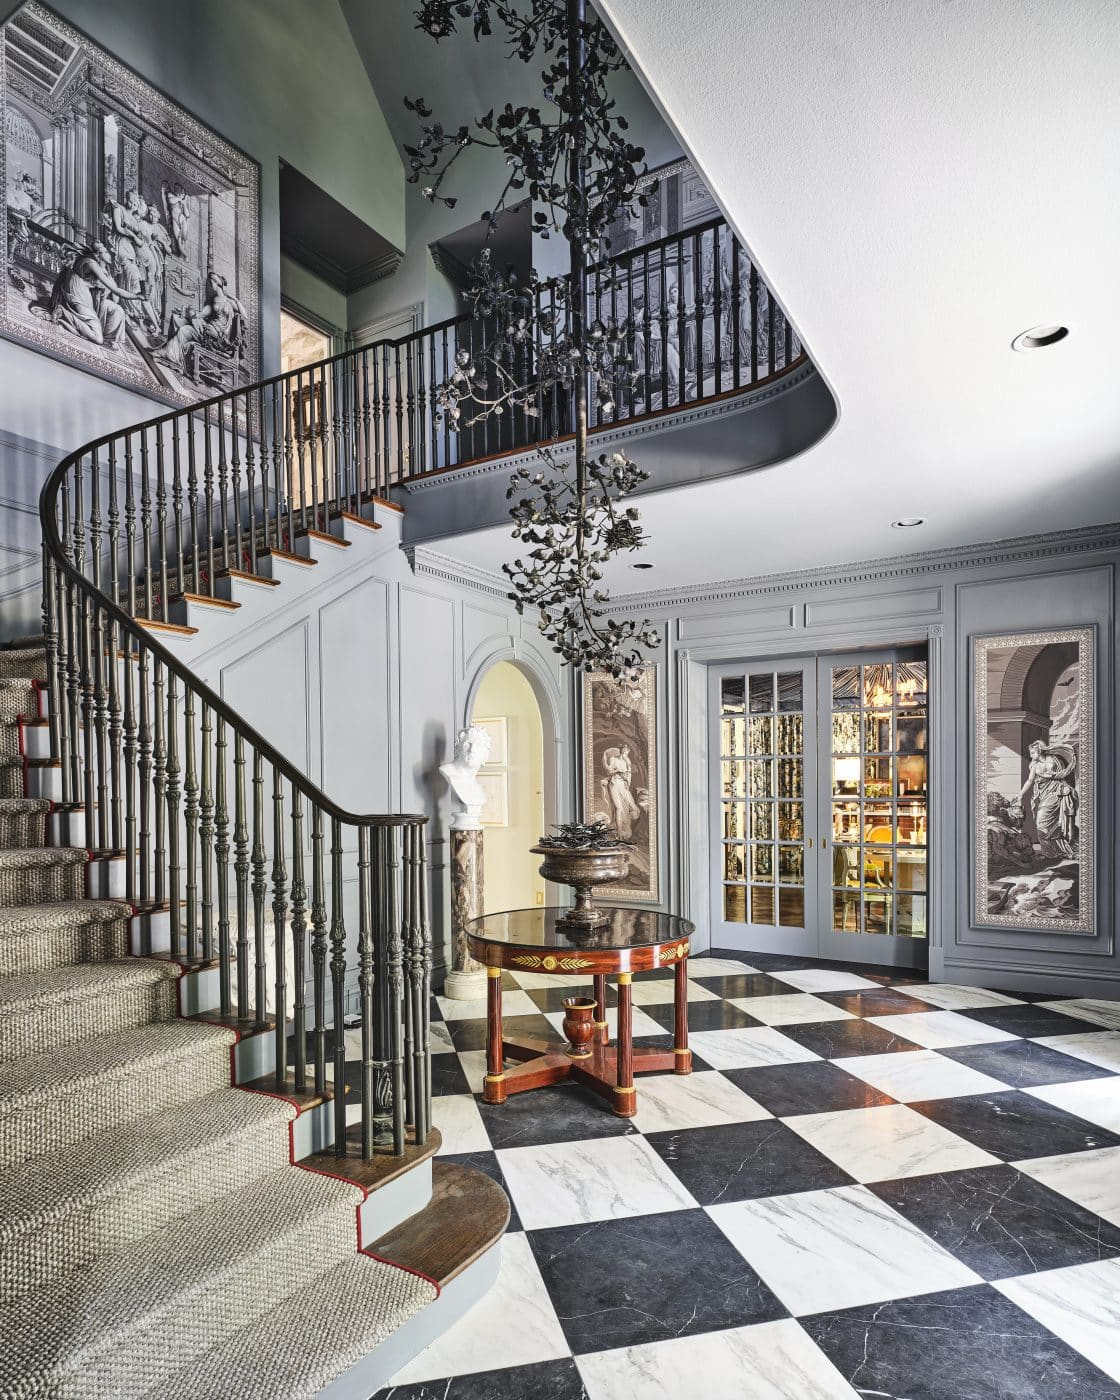 Foyer designed by Bobbit and Company